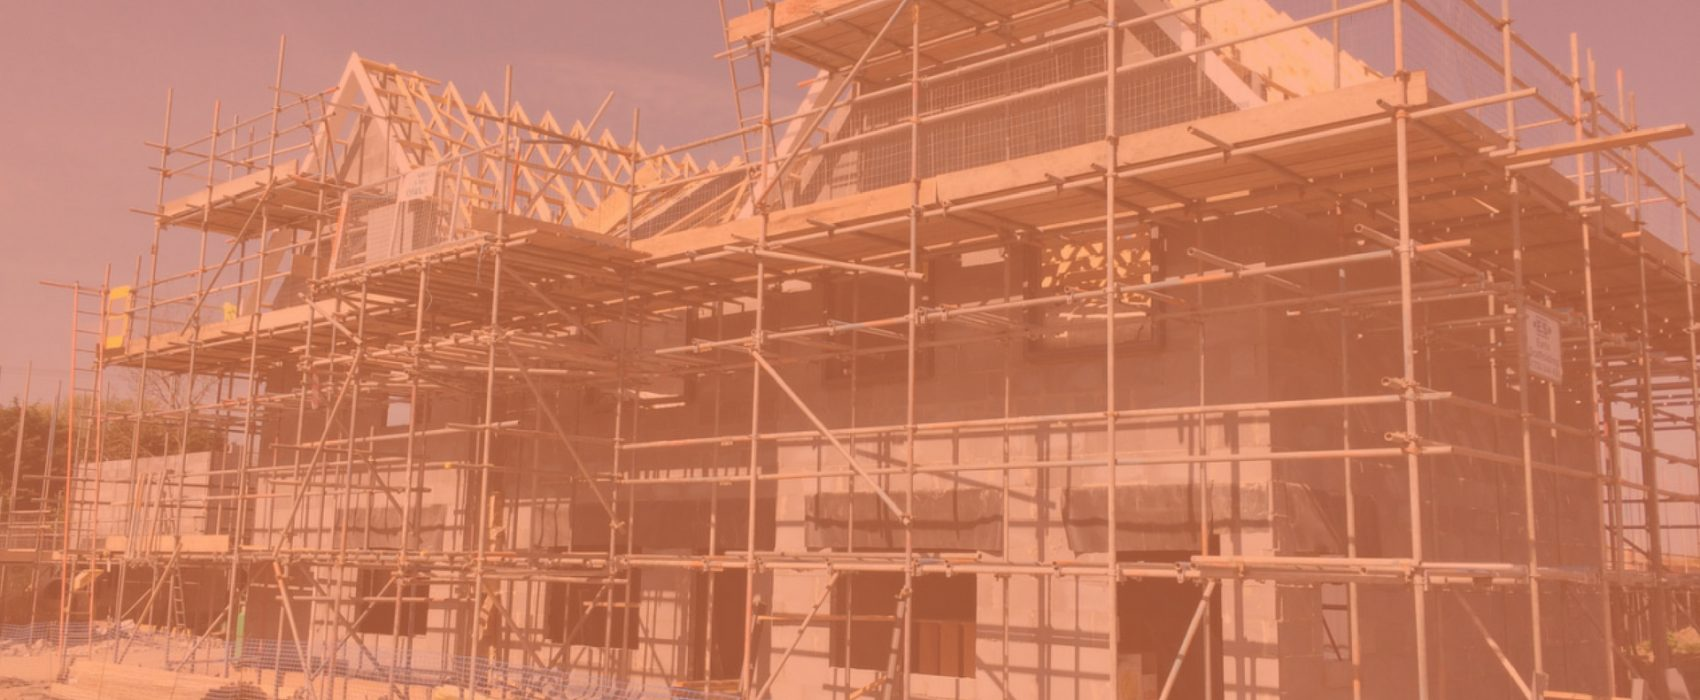 Earls Scaffolding - Scaffolding apprentice - part two scaffolder